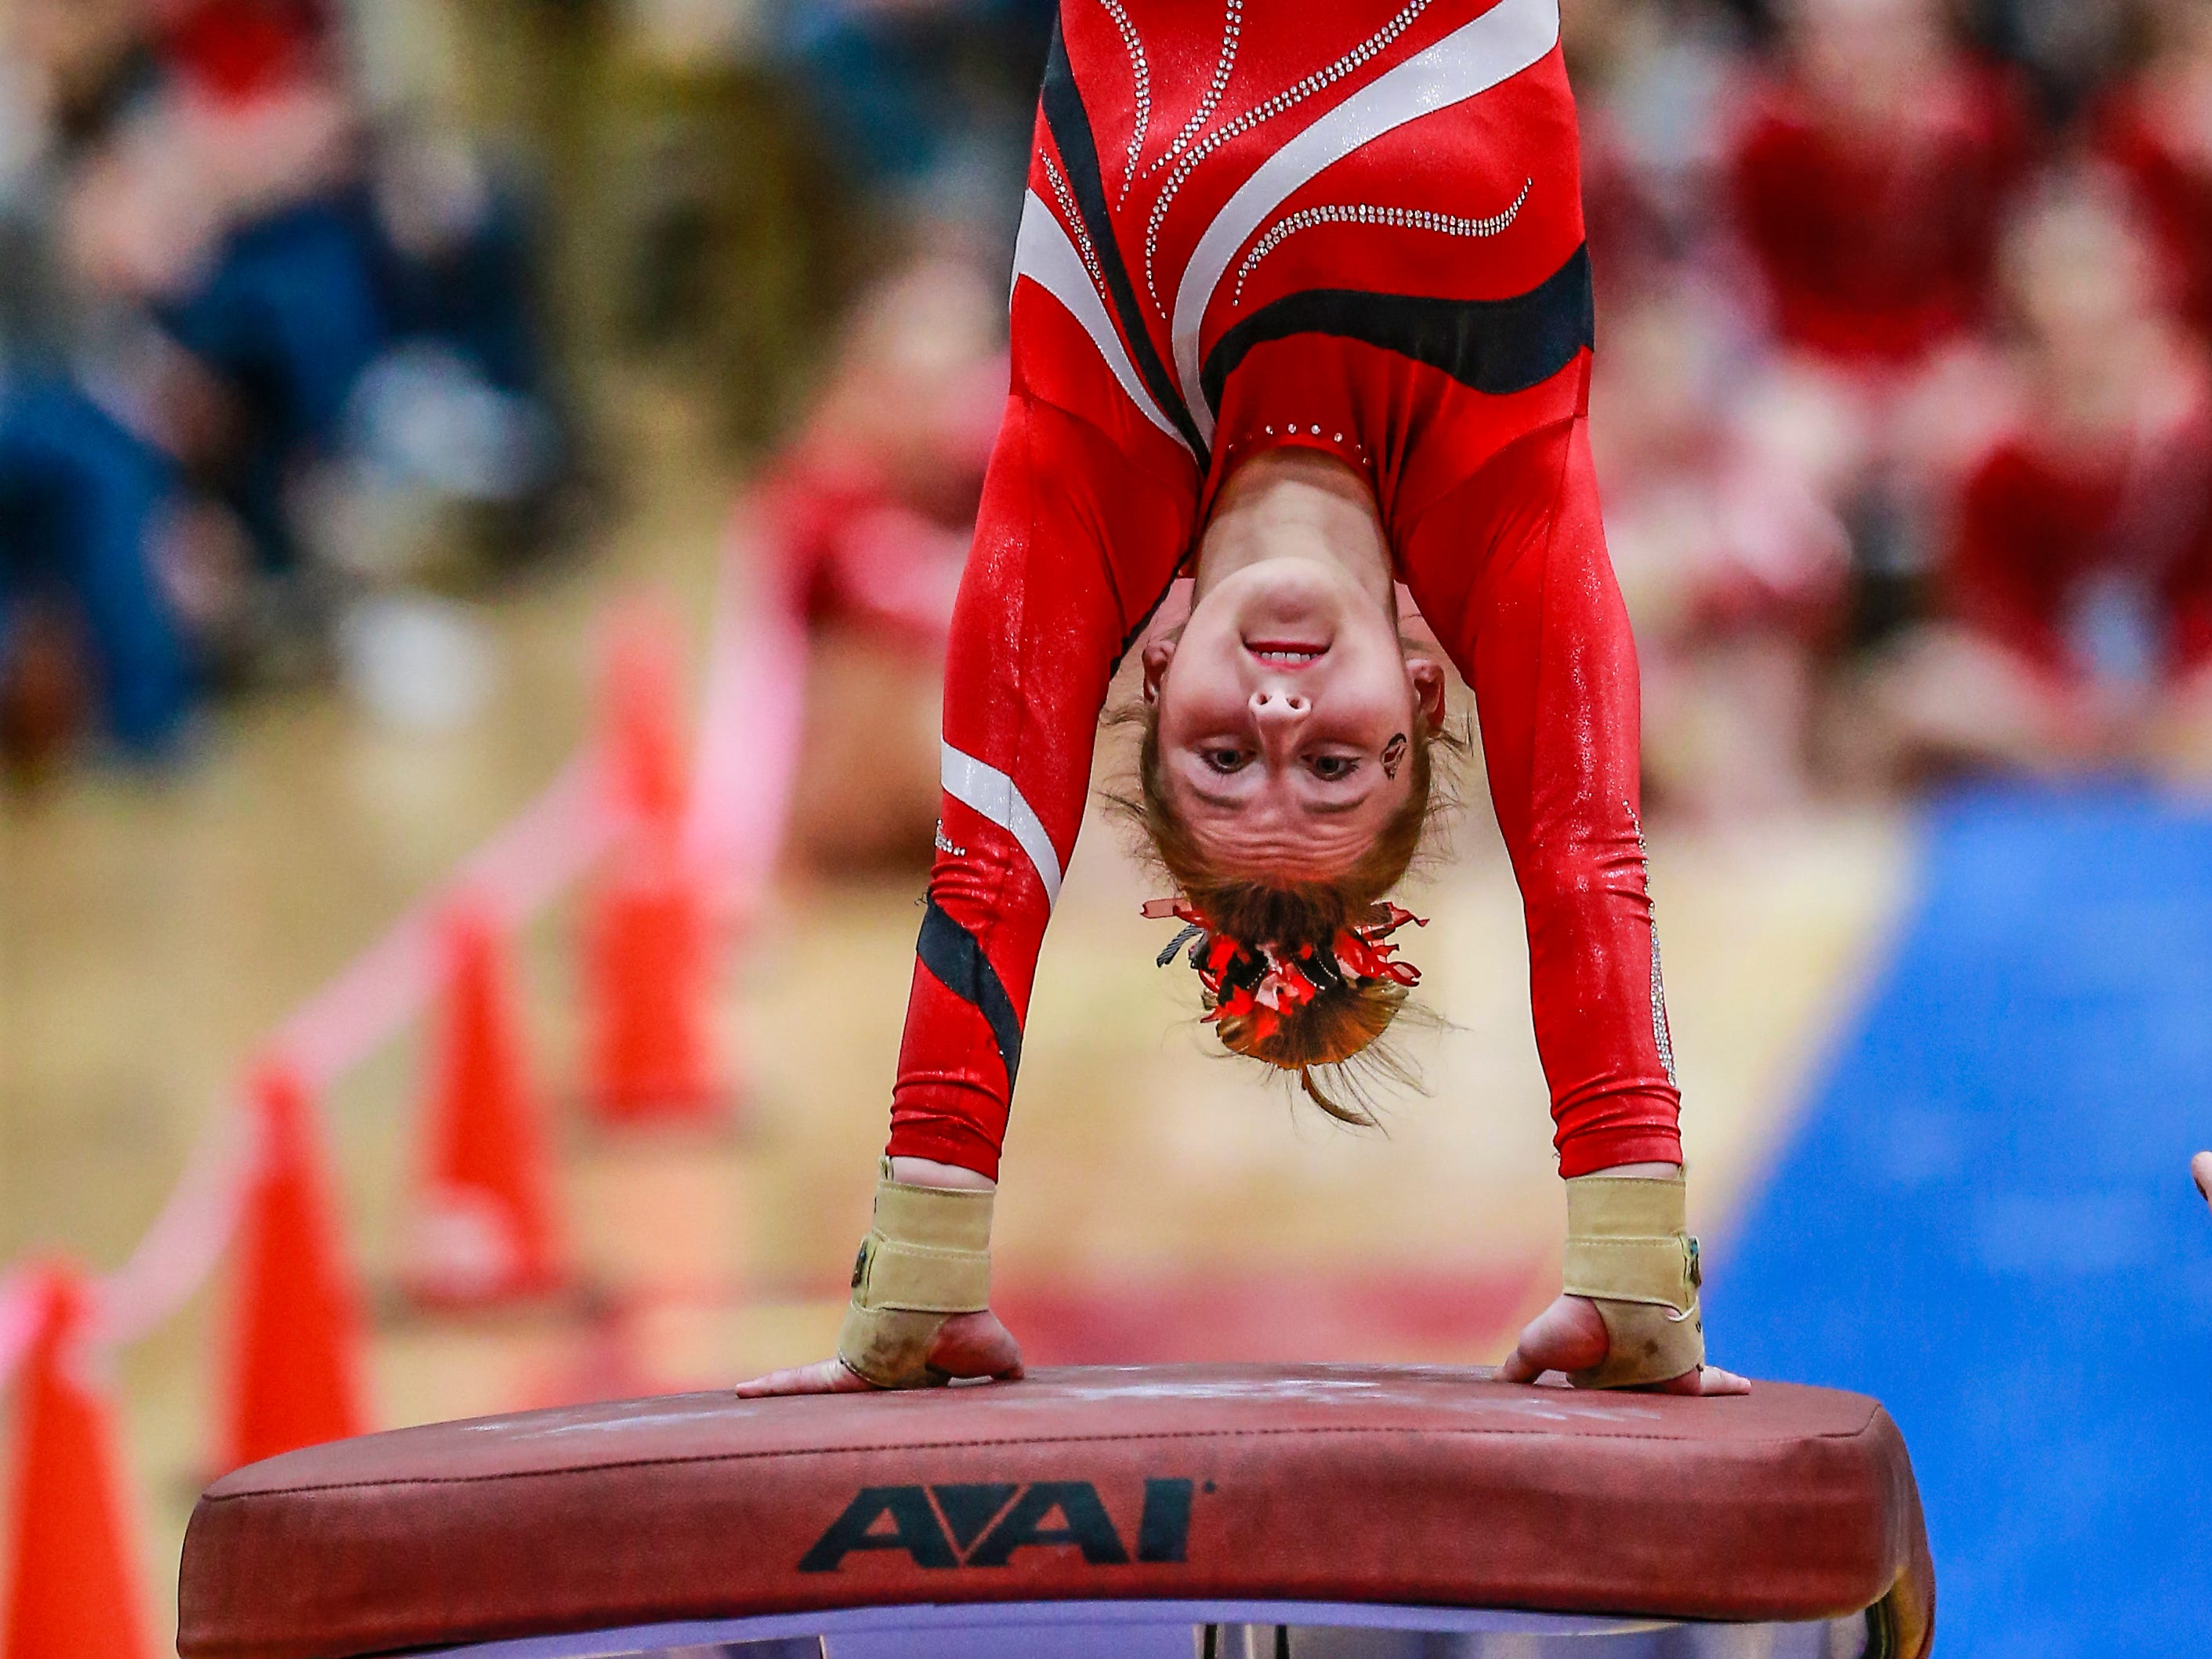 Manitowoc Lincoln's Brynn Tackett competes in the vaulting during WIAA state gymnastics competition Friday, March 1, 2019, at Lincoln High School Field House in Wisconsin Rapids, Wis. T'xer Zhon Kha/USA TODAY NETWORK-Wisconsin